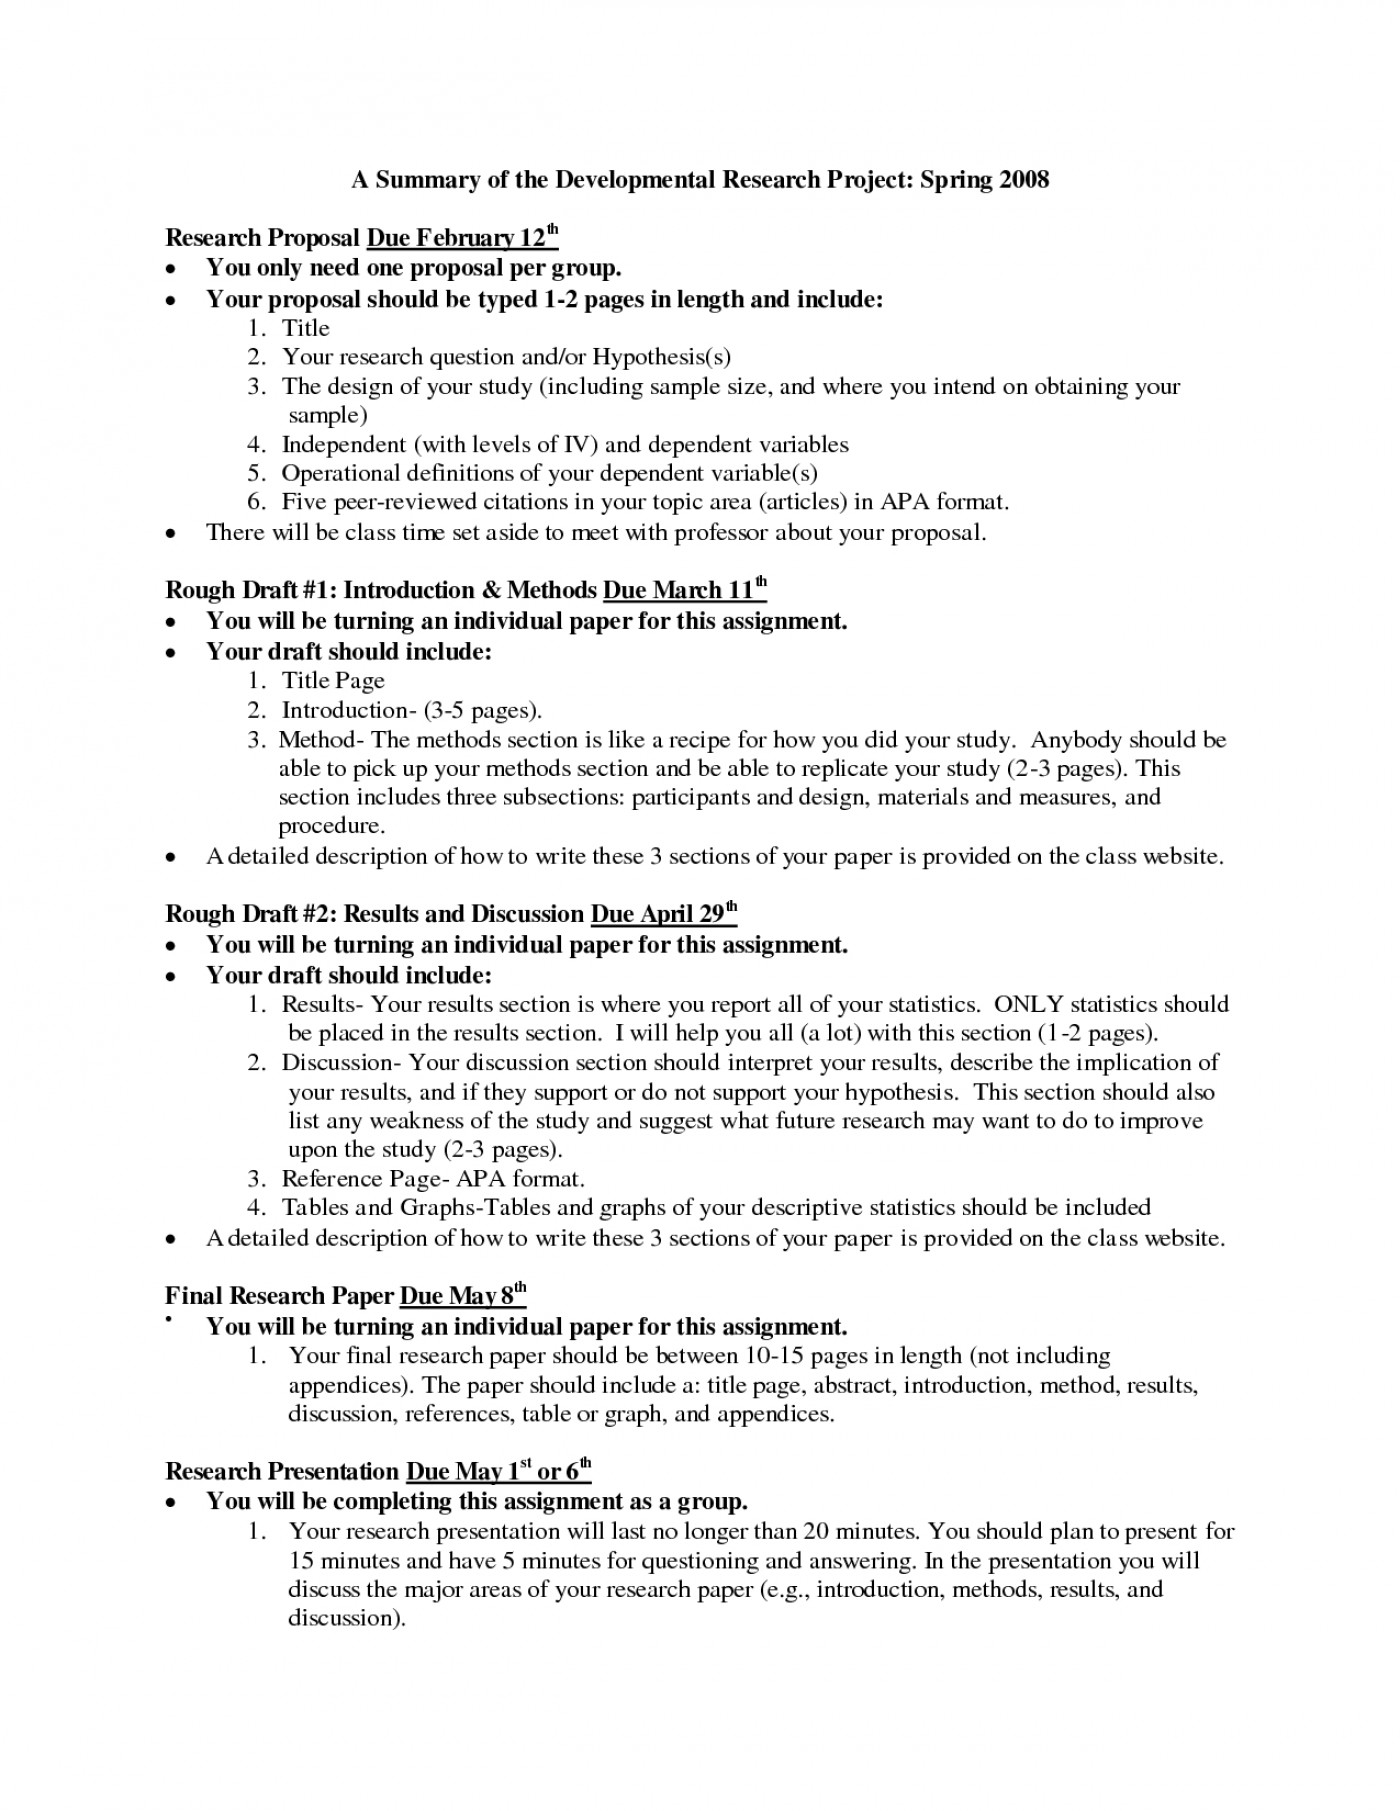 009 Good Topics For Researchs Psychology Undergraduate Resume Unique Sample Of Awesome Research Papers Argumentative In College Interesting Paper The Philippines 1400